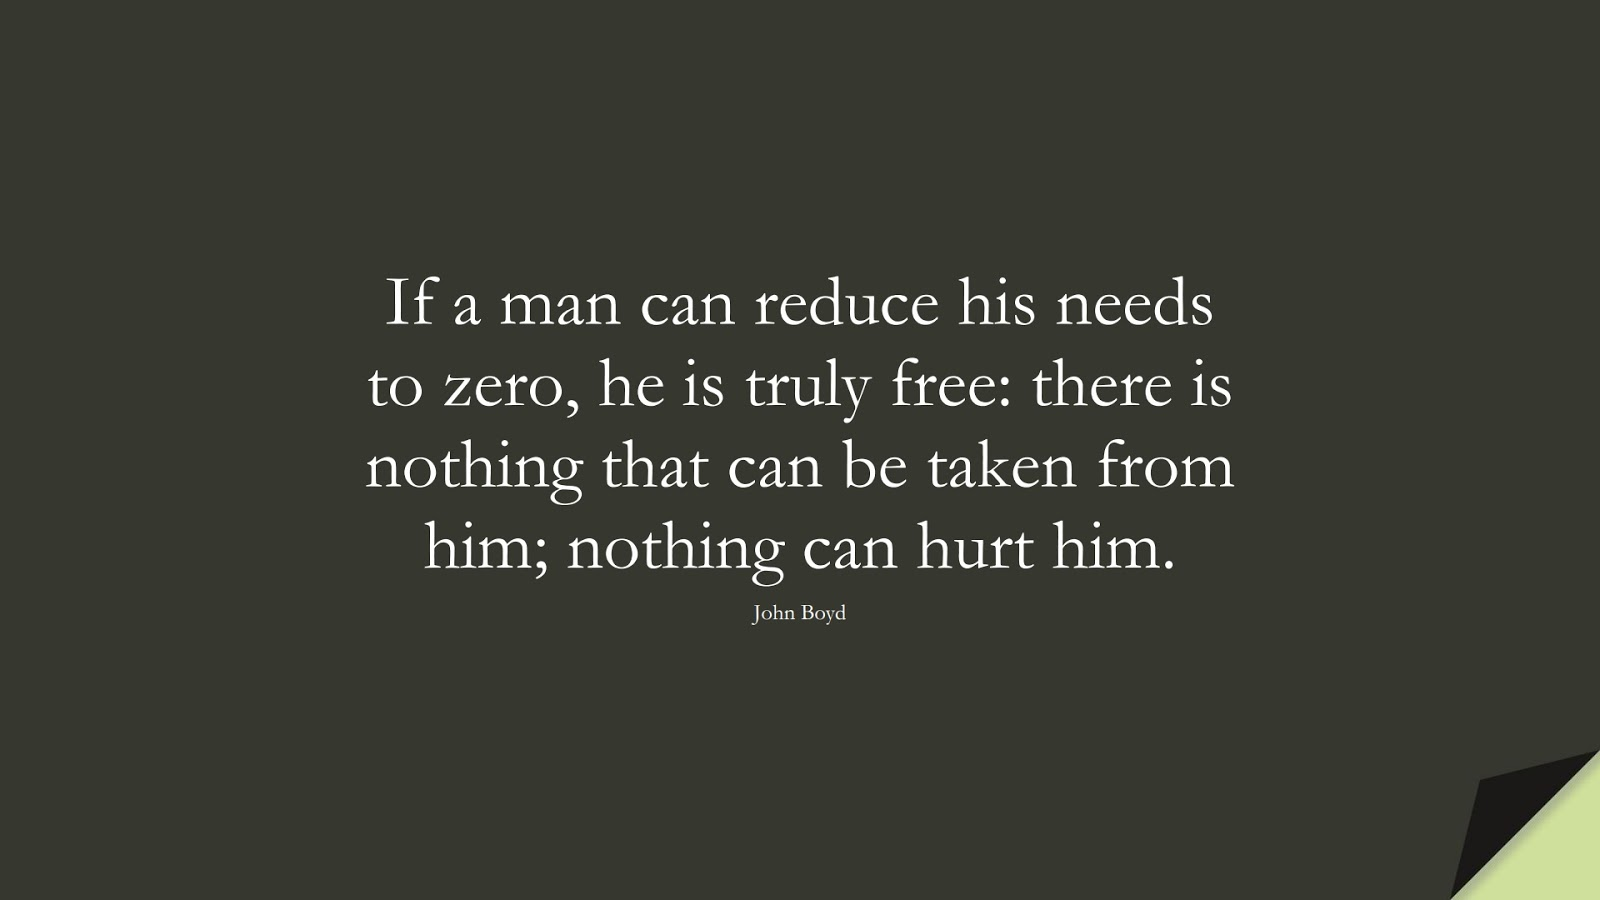 If a man can reduce his needs to zero, he is truly free: there is nothing that can be taken from him; nothing can hurt him. (John Boyd);  #BestQuotes